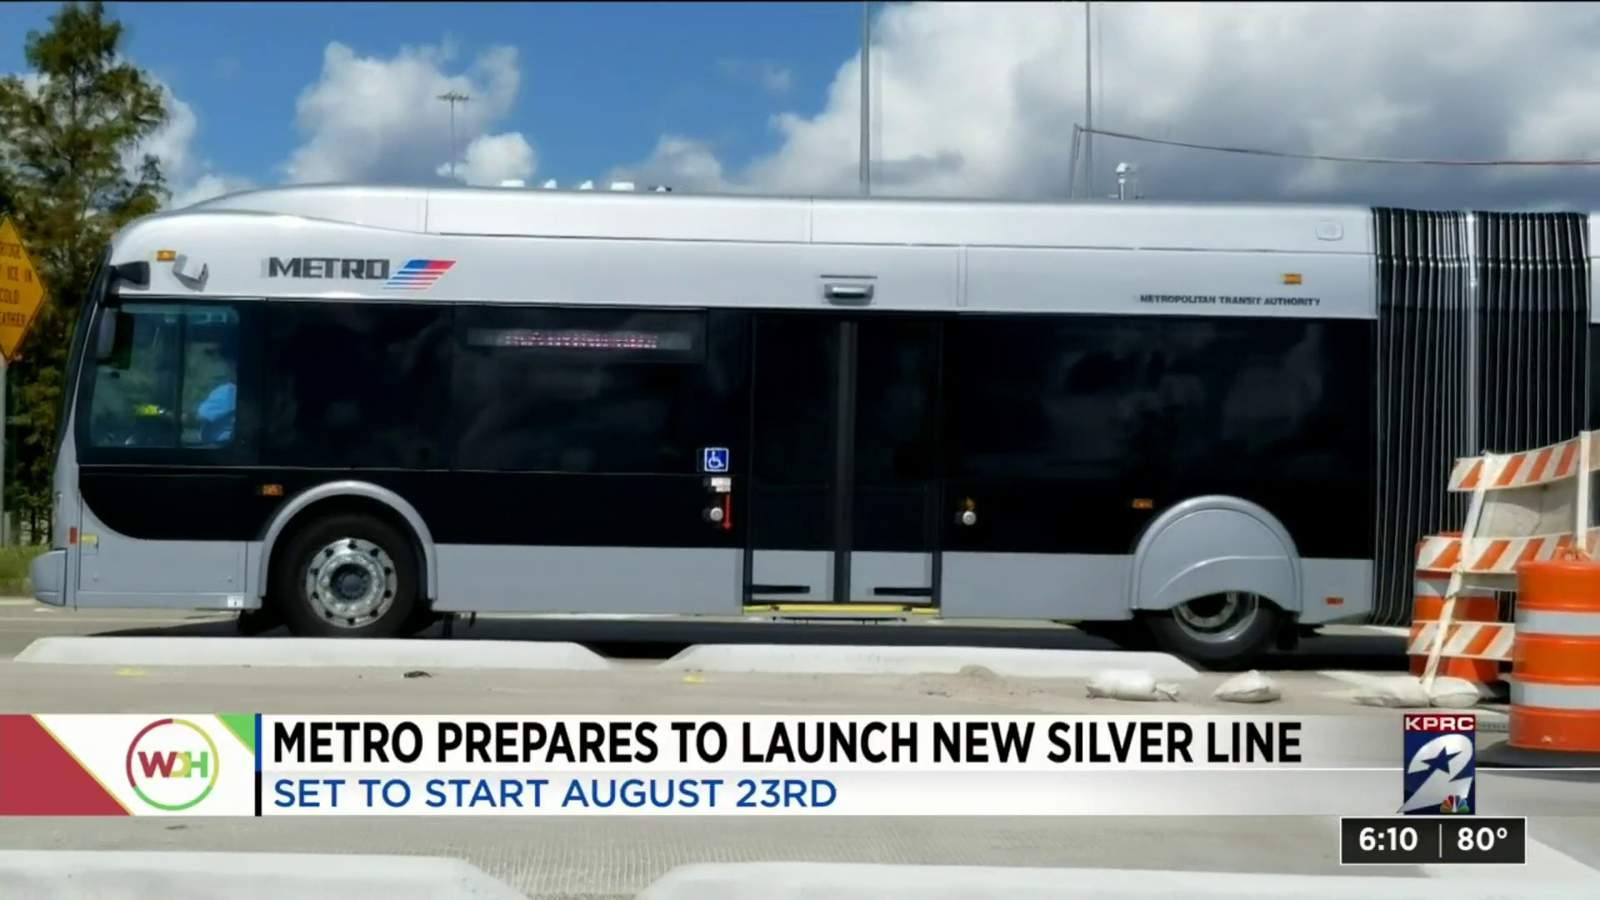 METRO prepares to launch new Silver Line in Uptown